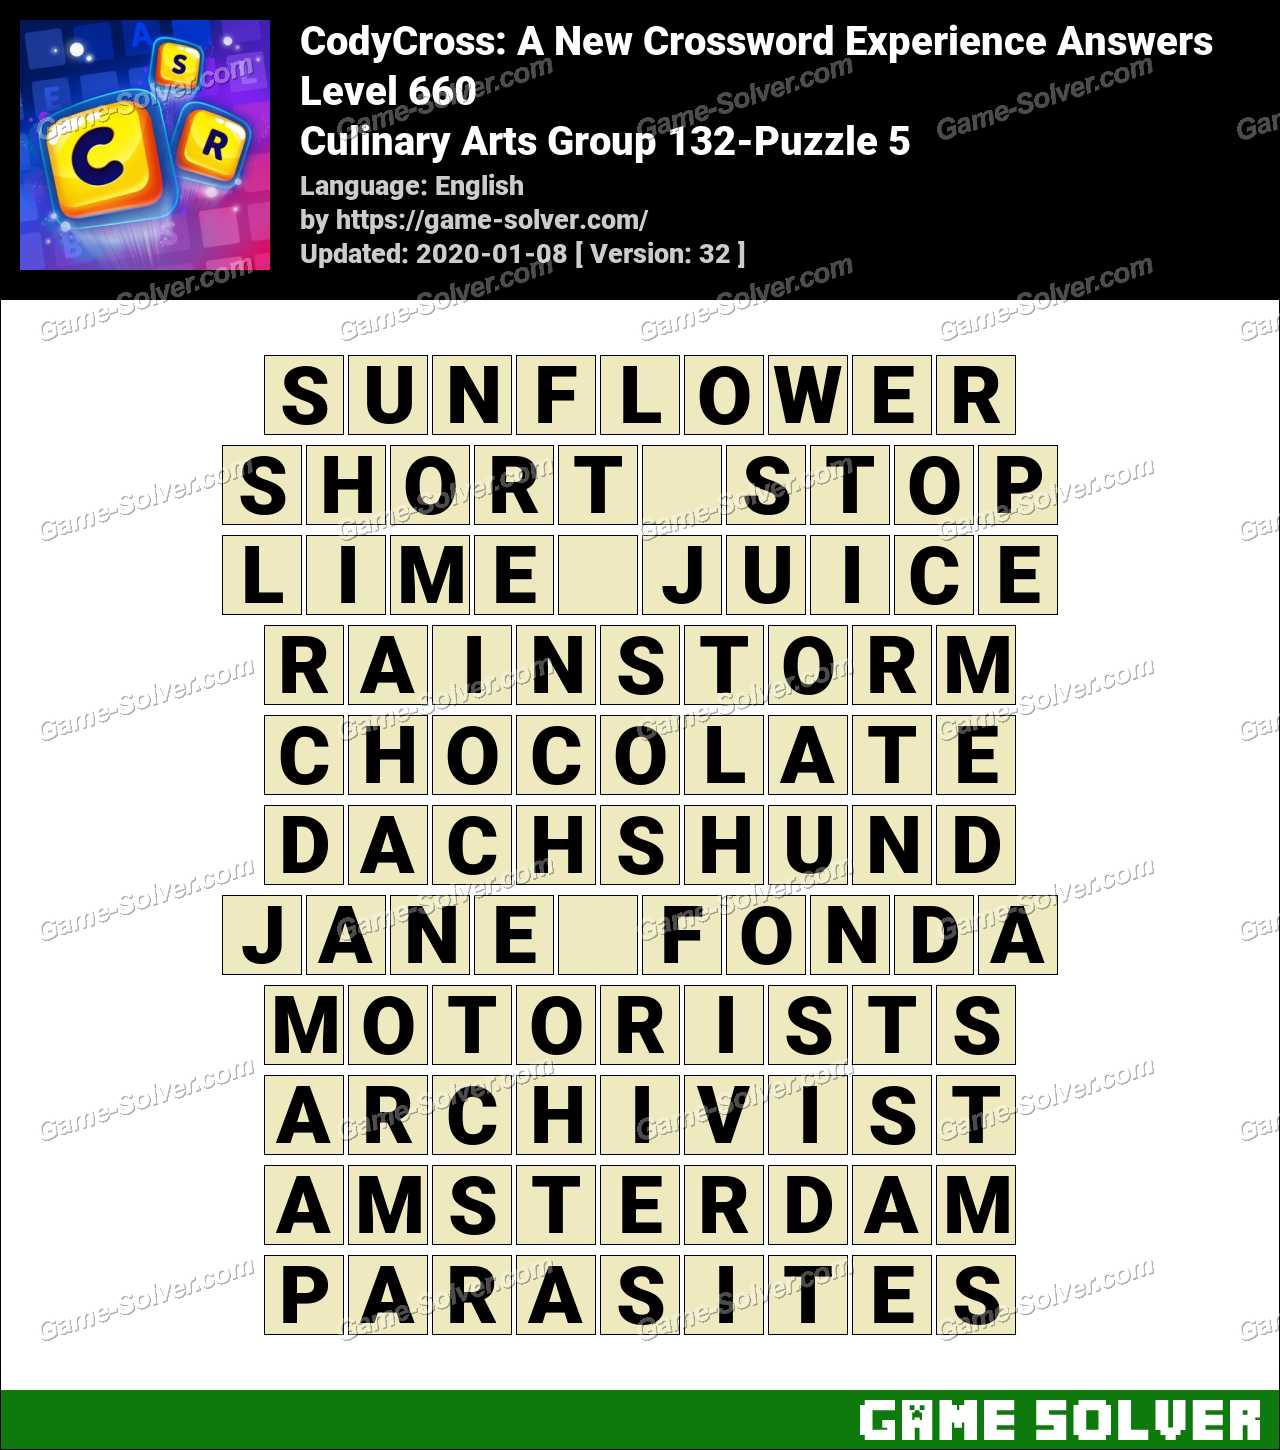 CodyCross Culinary Arts Group 132-Puzzle 5 Answers